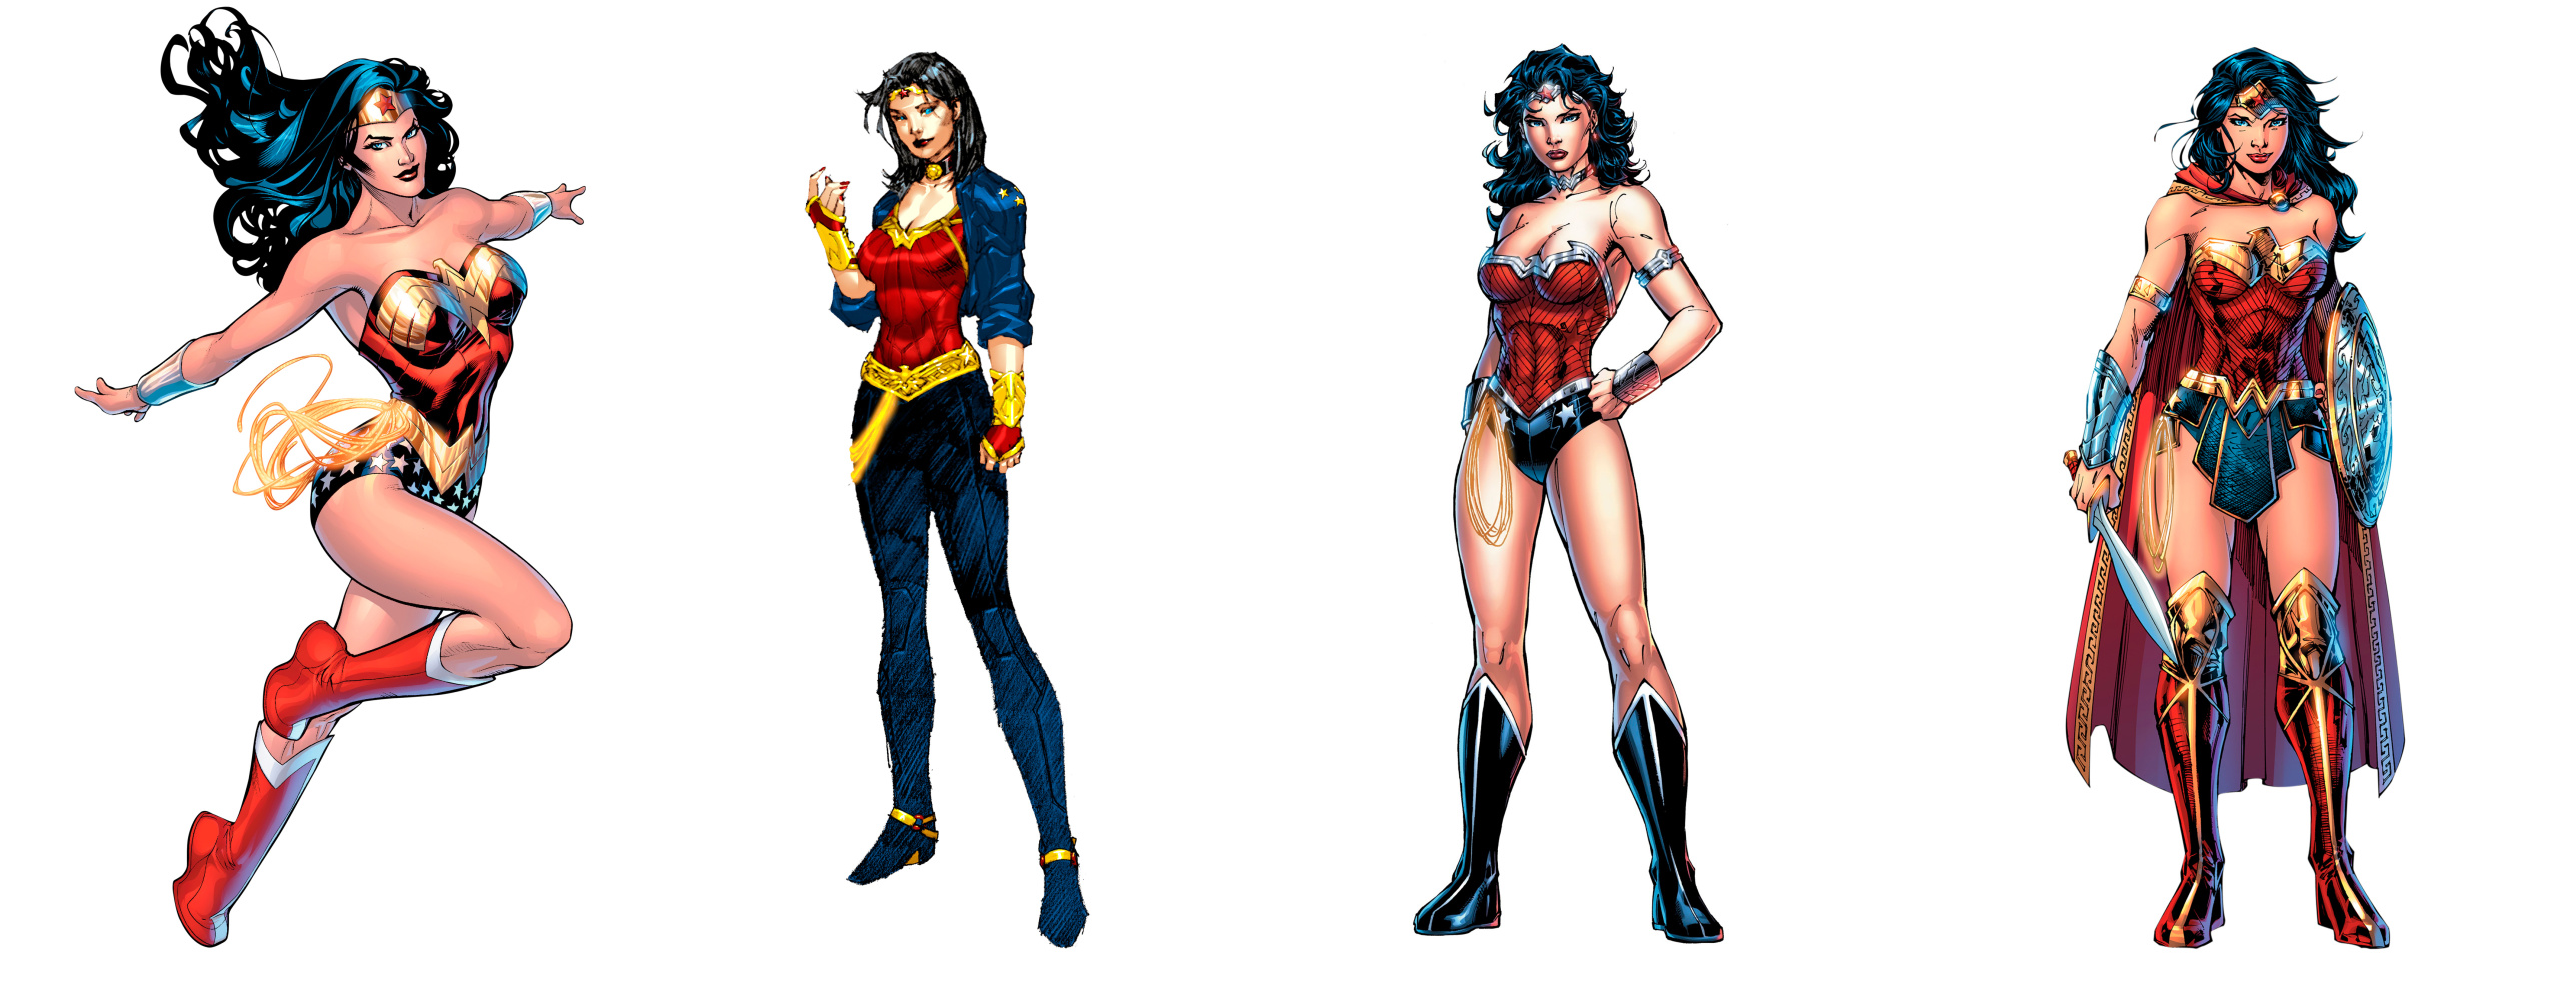 wonder woman evolution comic3